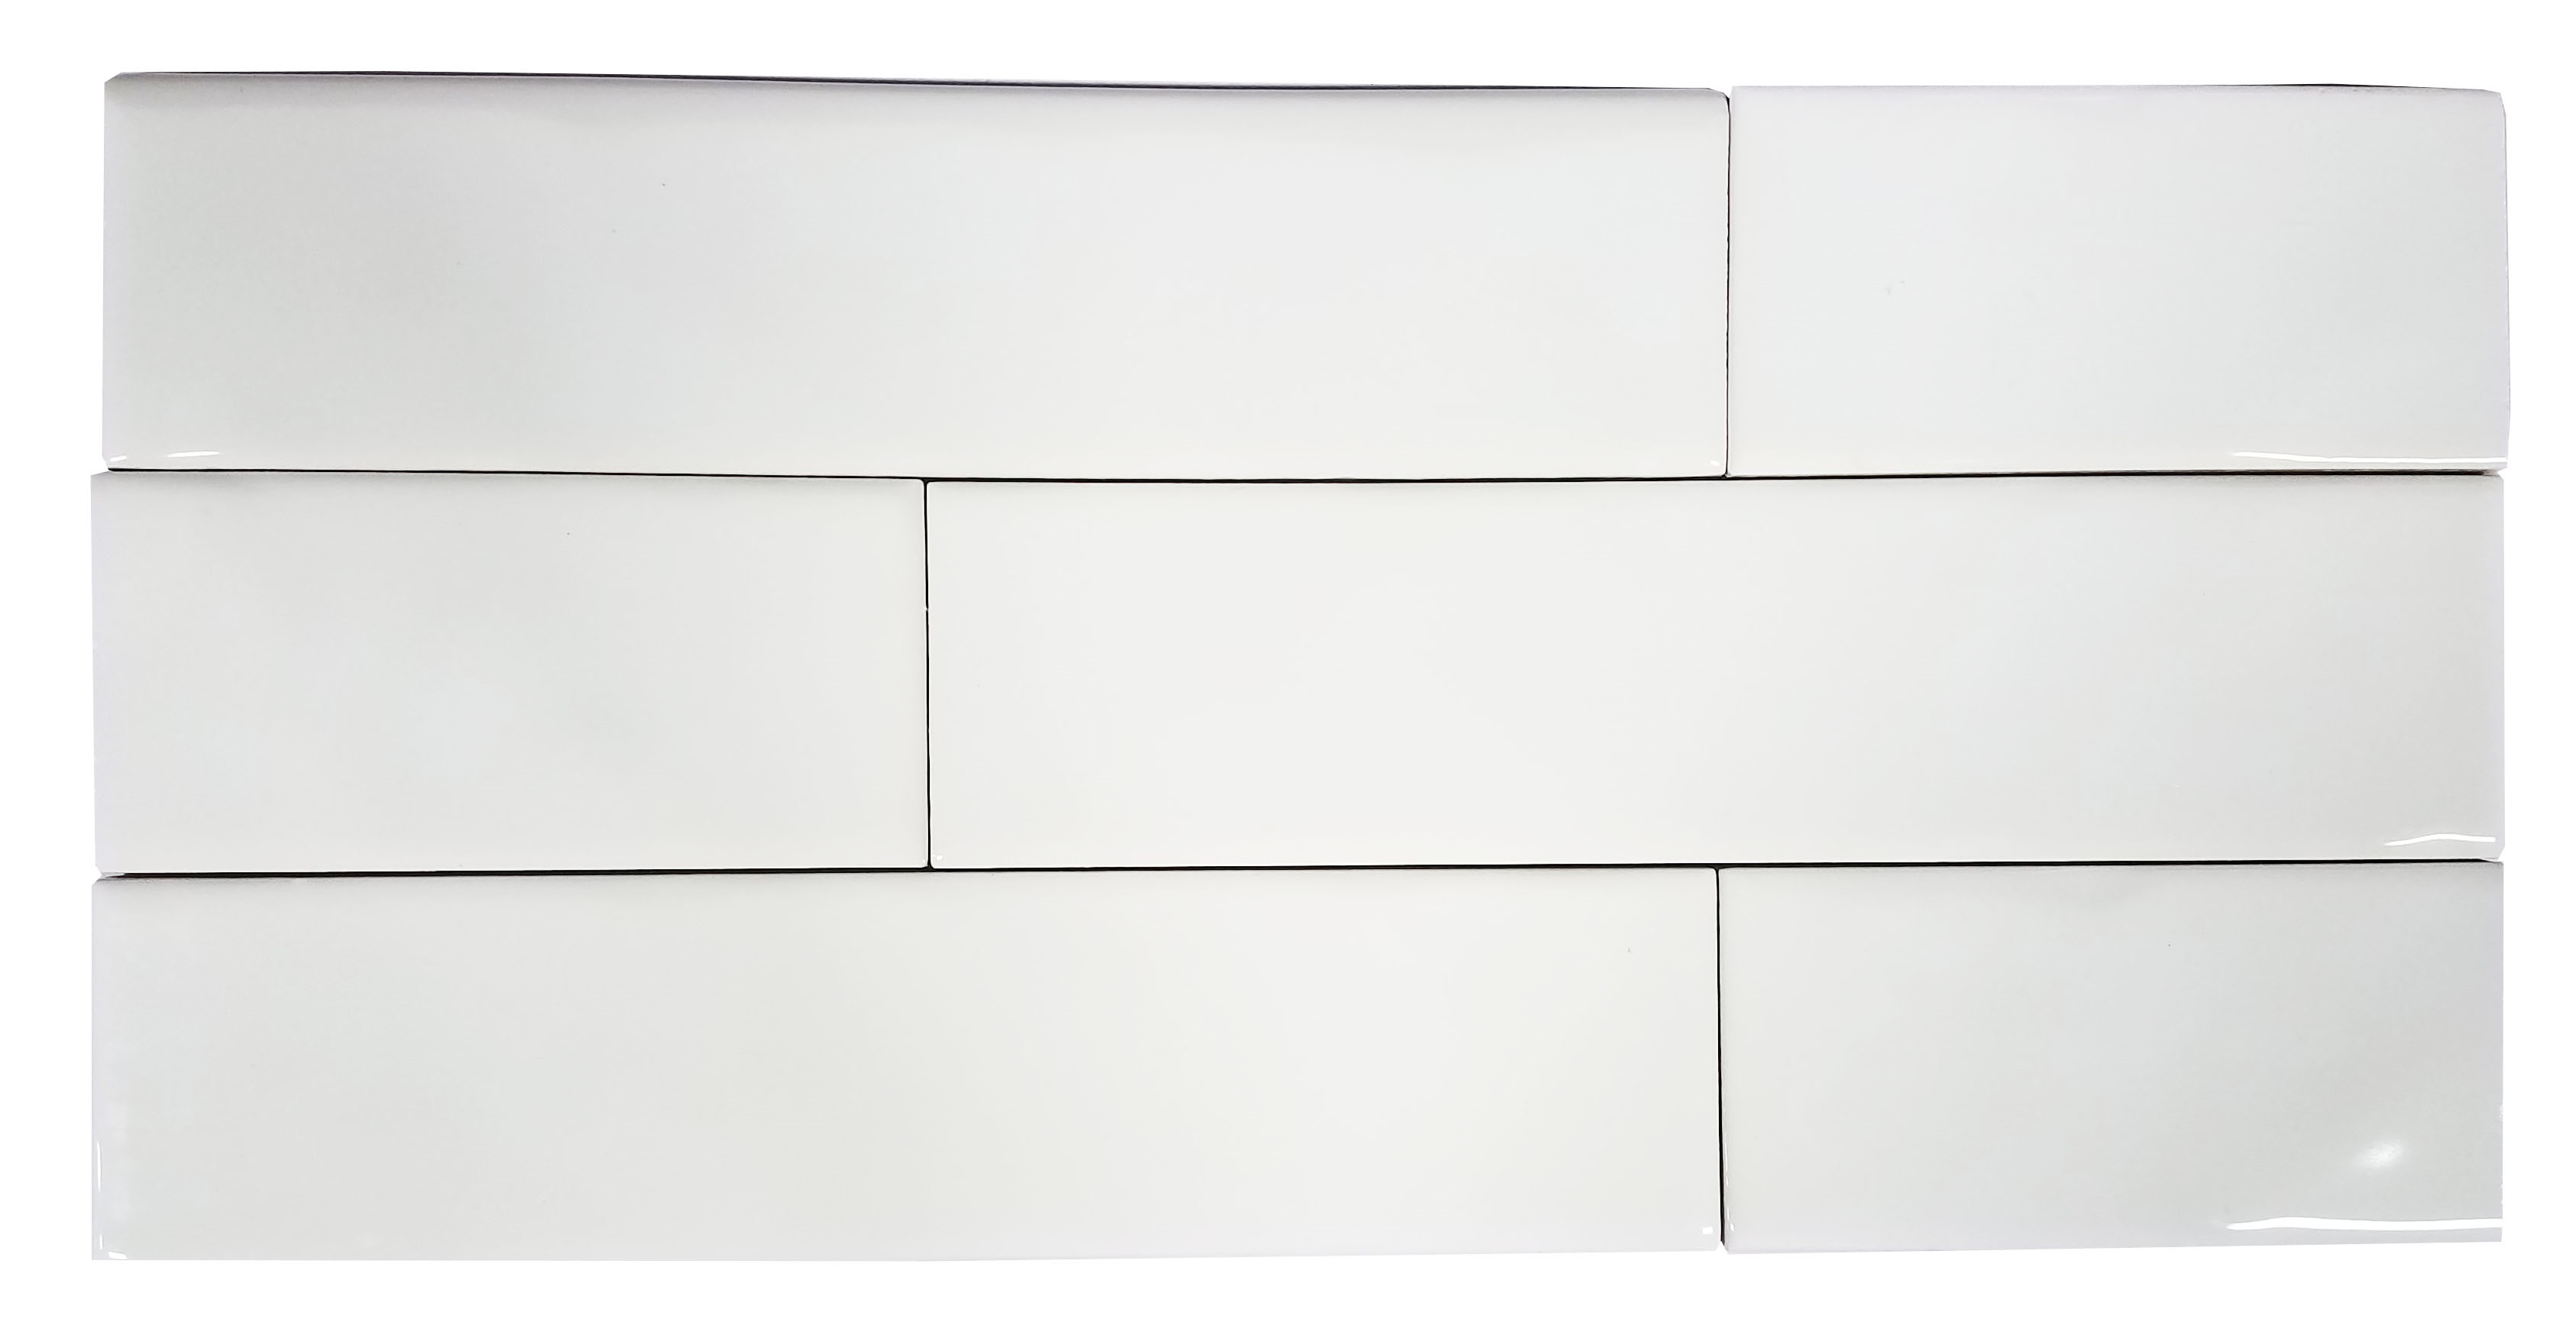 2 x 8 Chelsea White Ceramic Wall subway